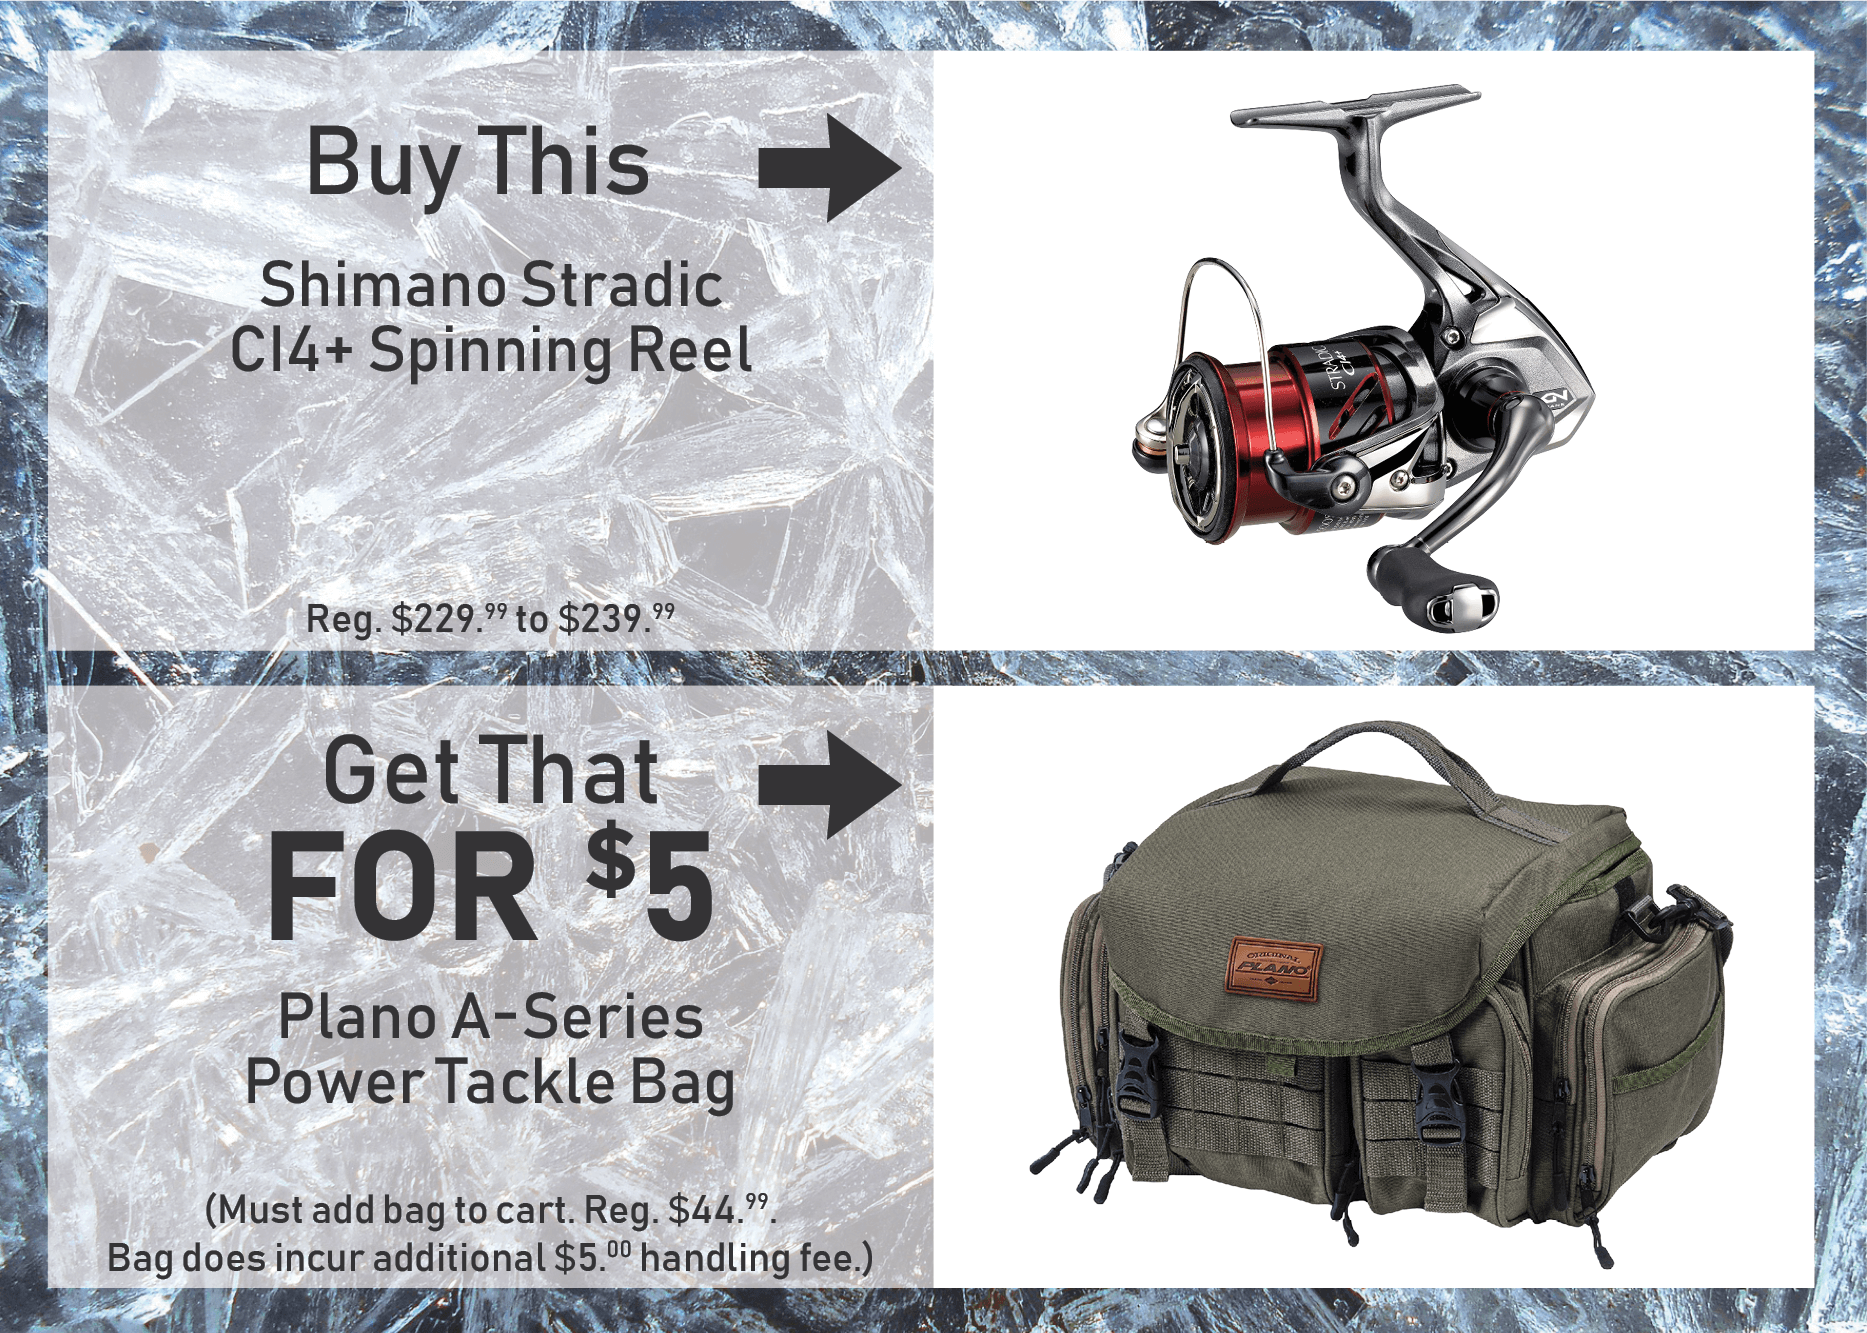 BUY a Shimano Stradic CI4+ Spinning Reel & GET a Plano A-Series Power Tackle Bag for ONLY $5